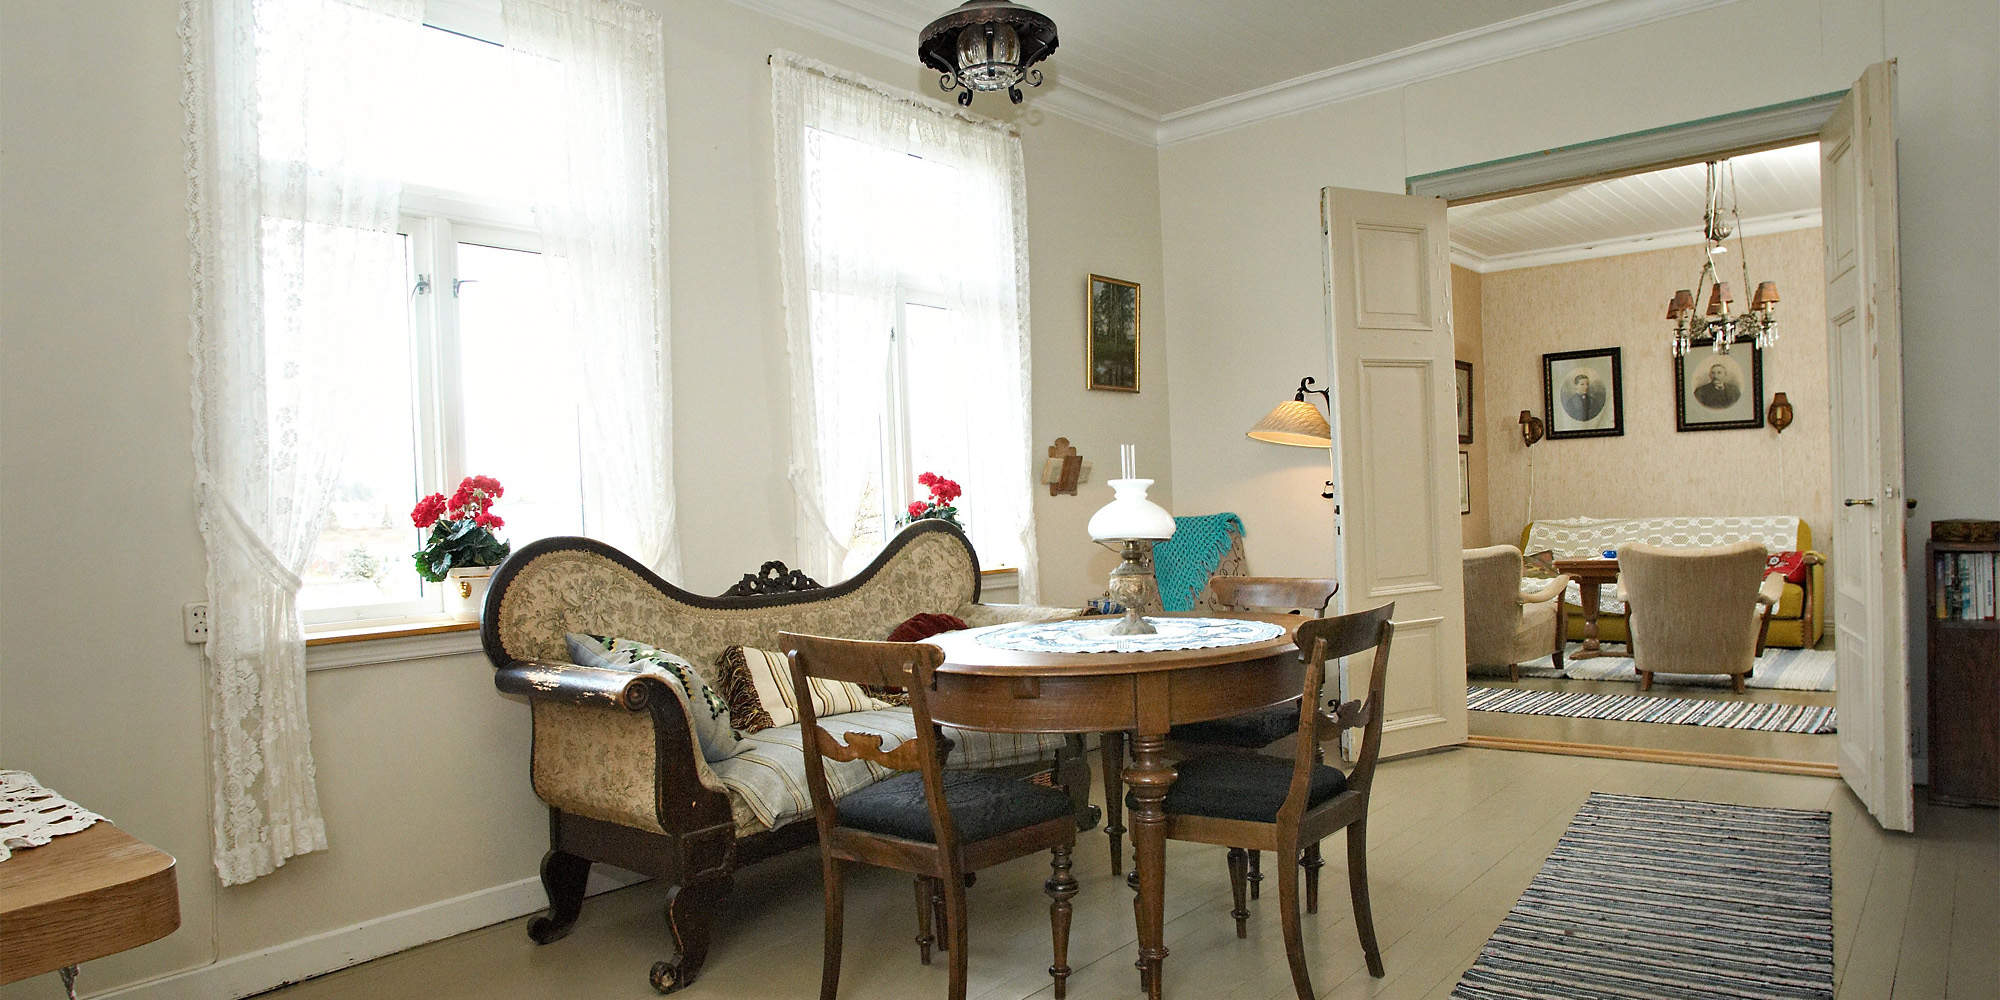 The living room at Strømnes. Copyright: Strømnes